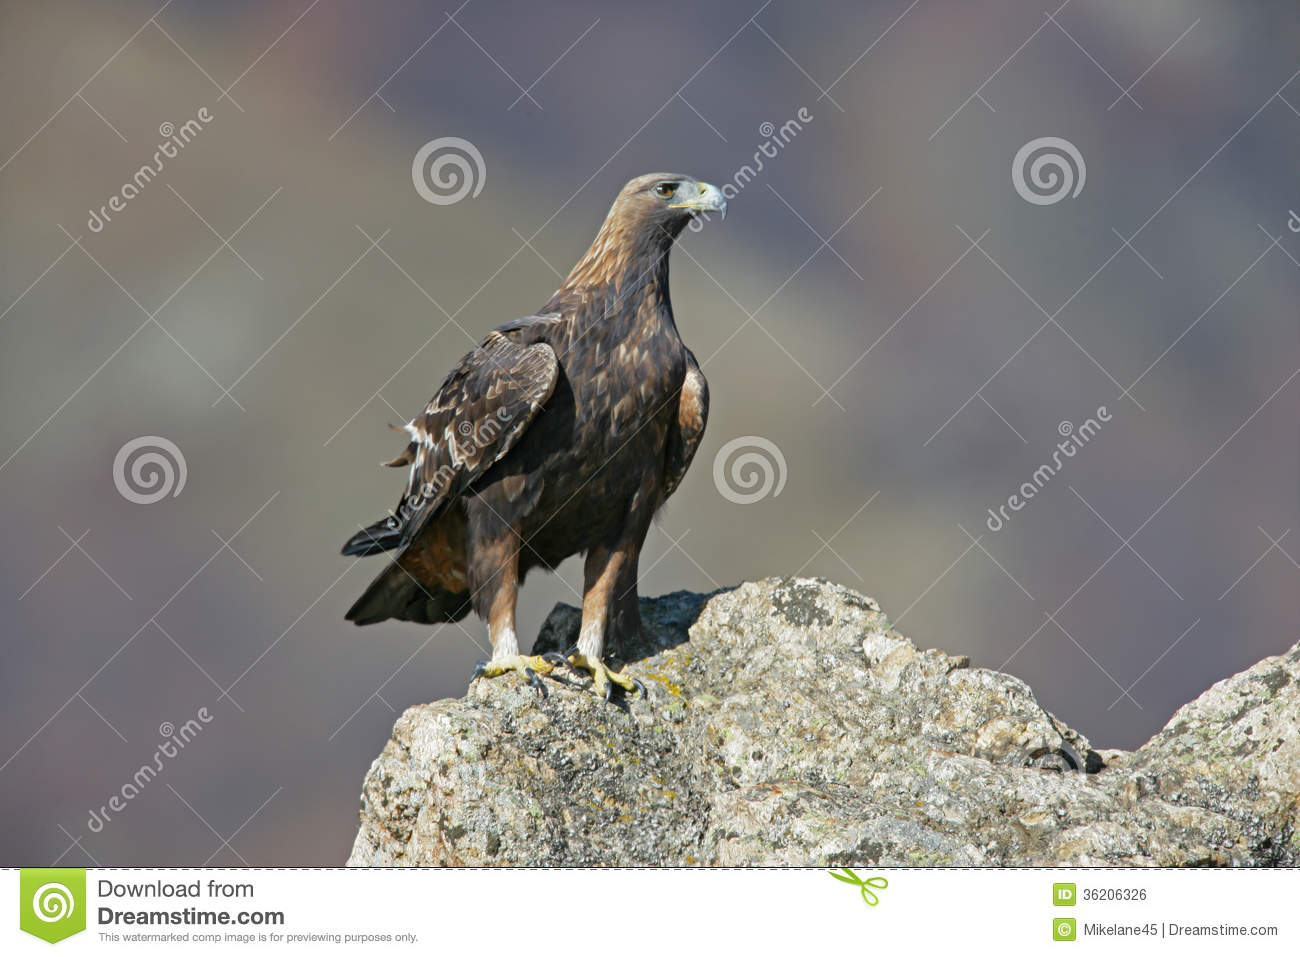 golden eagle asian singles A fascinating central asian custom: the hunters who use golden eagles to catch their prey.